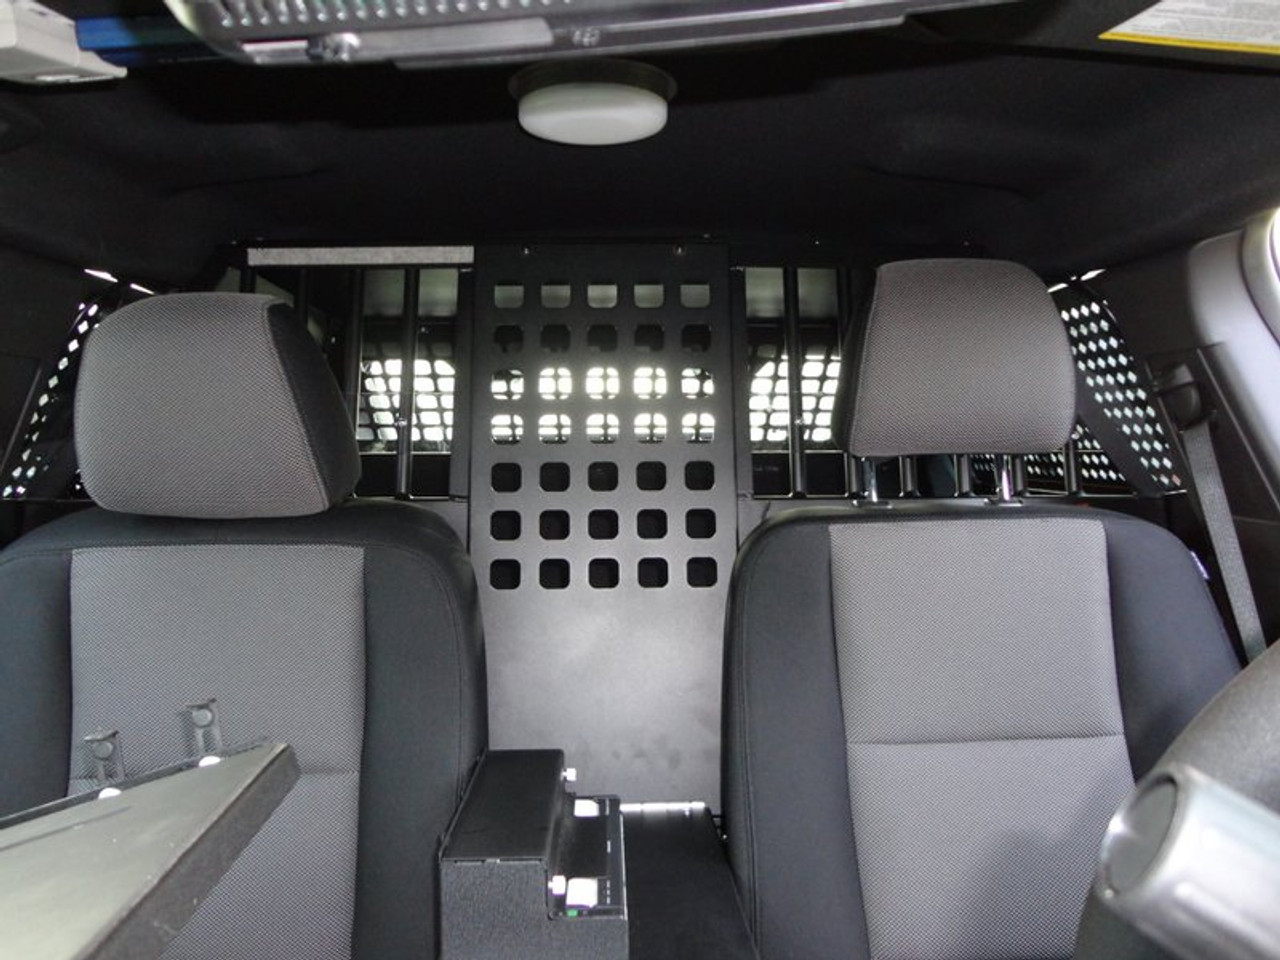 American Aluminum Ford Interceptor Utility SUV EZ Rider K9 Police Vehicle Kennel Transport System, Insert, Black or Aluminum Finish, includes rubber mat, door panels, and window guards, 2013-2019